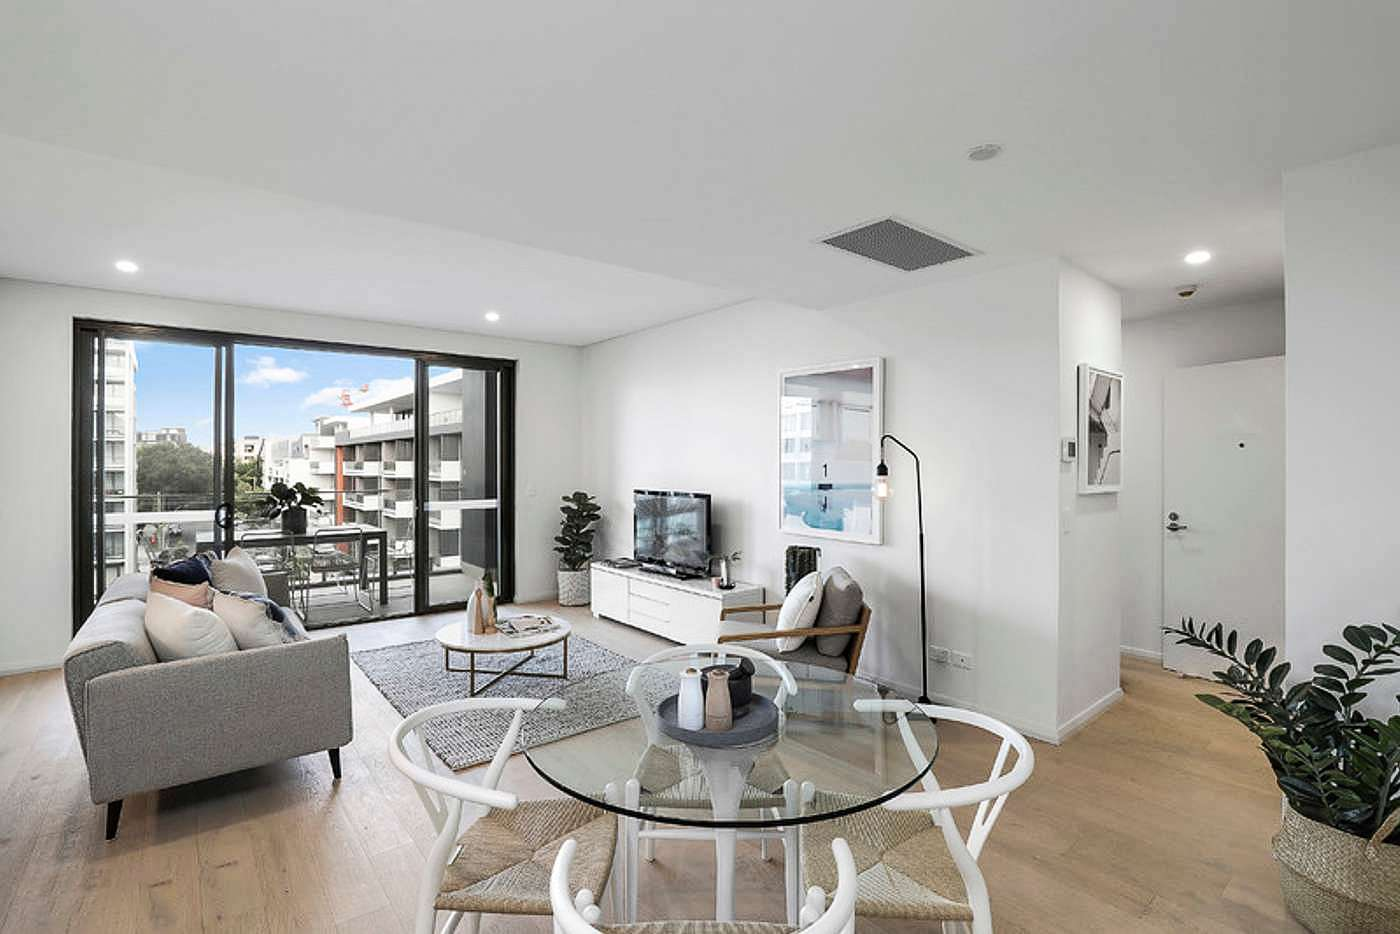 Main view of Homely apartment listing, 207/39-47 Mentmore Ave, Rosebery NSW 2018